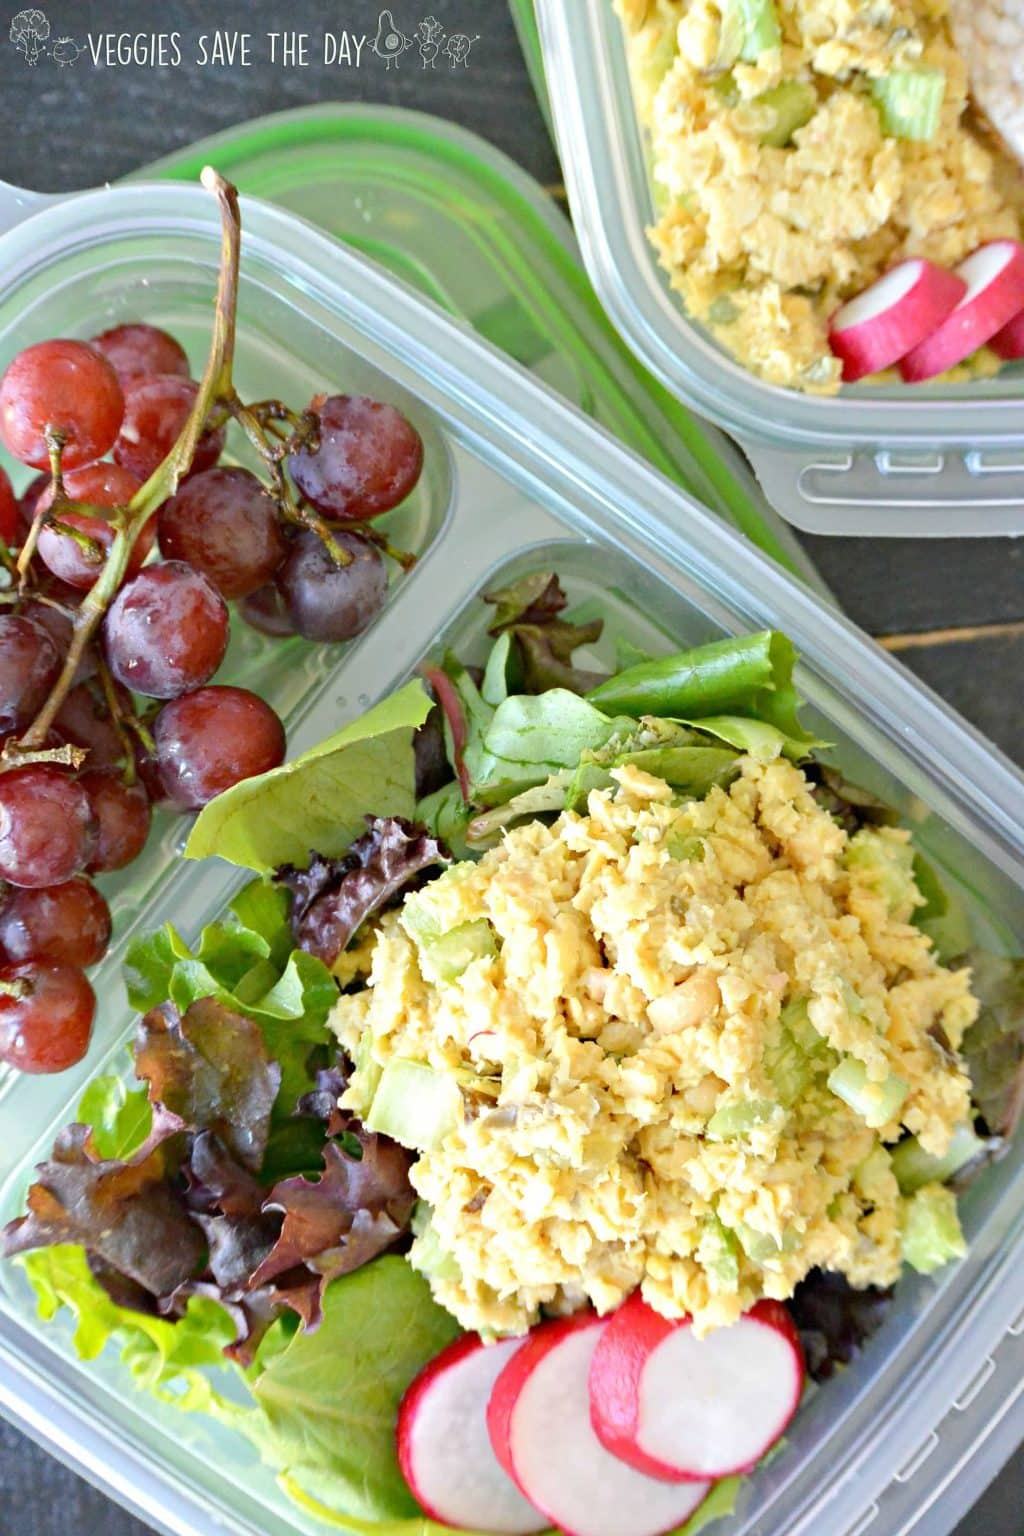 Vegan Tuna Salad packed for back-to-school or work lunches on a bed of mixed lettuce and a side of red grapes.